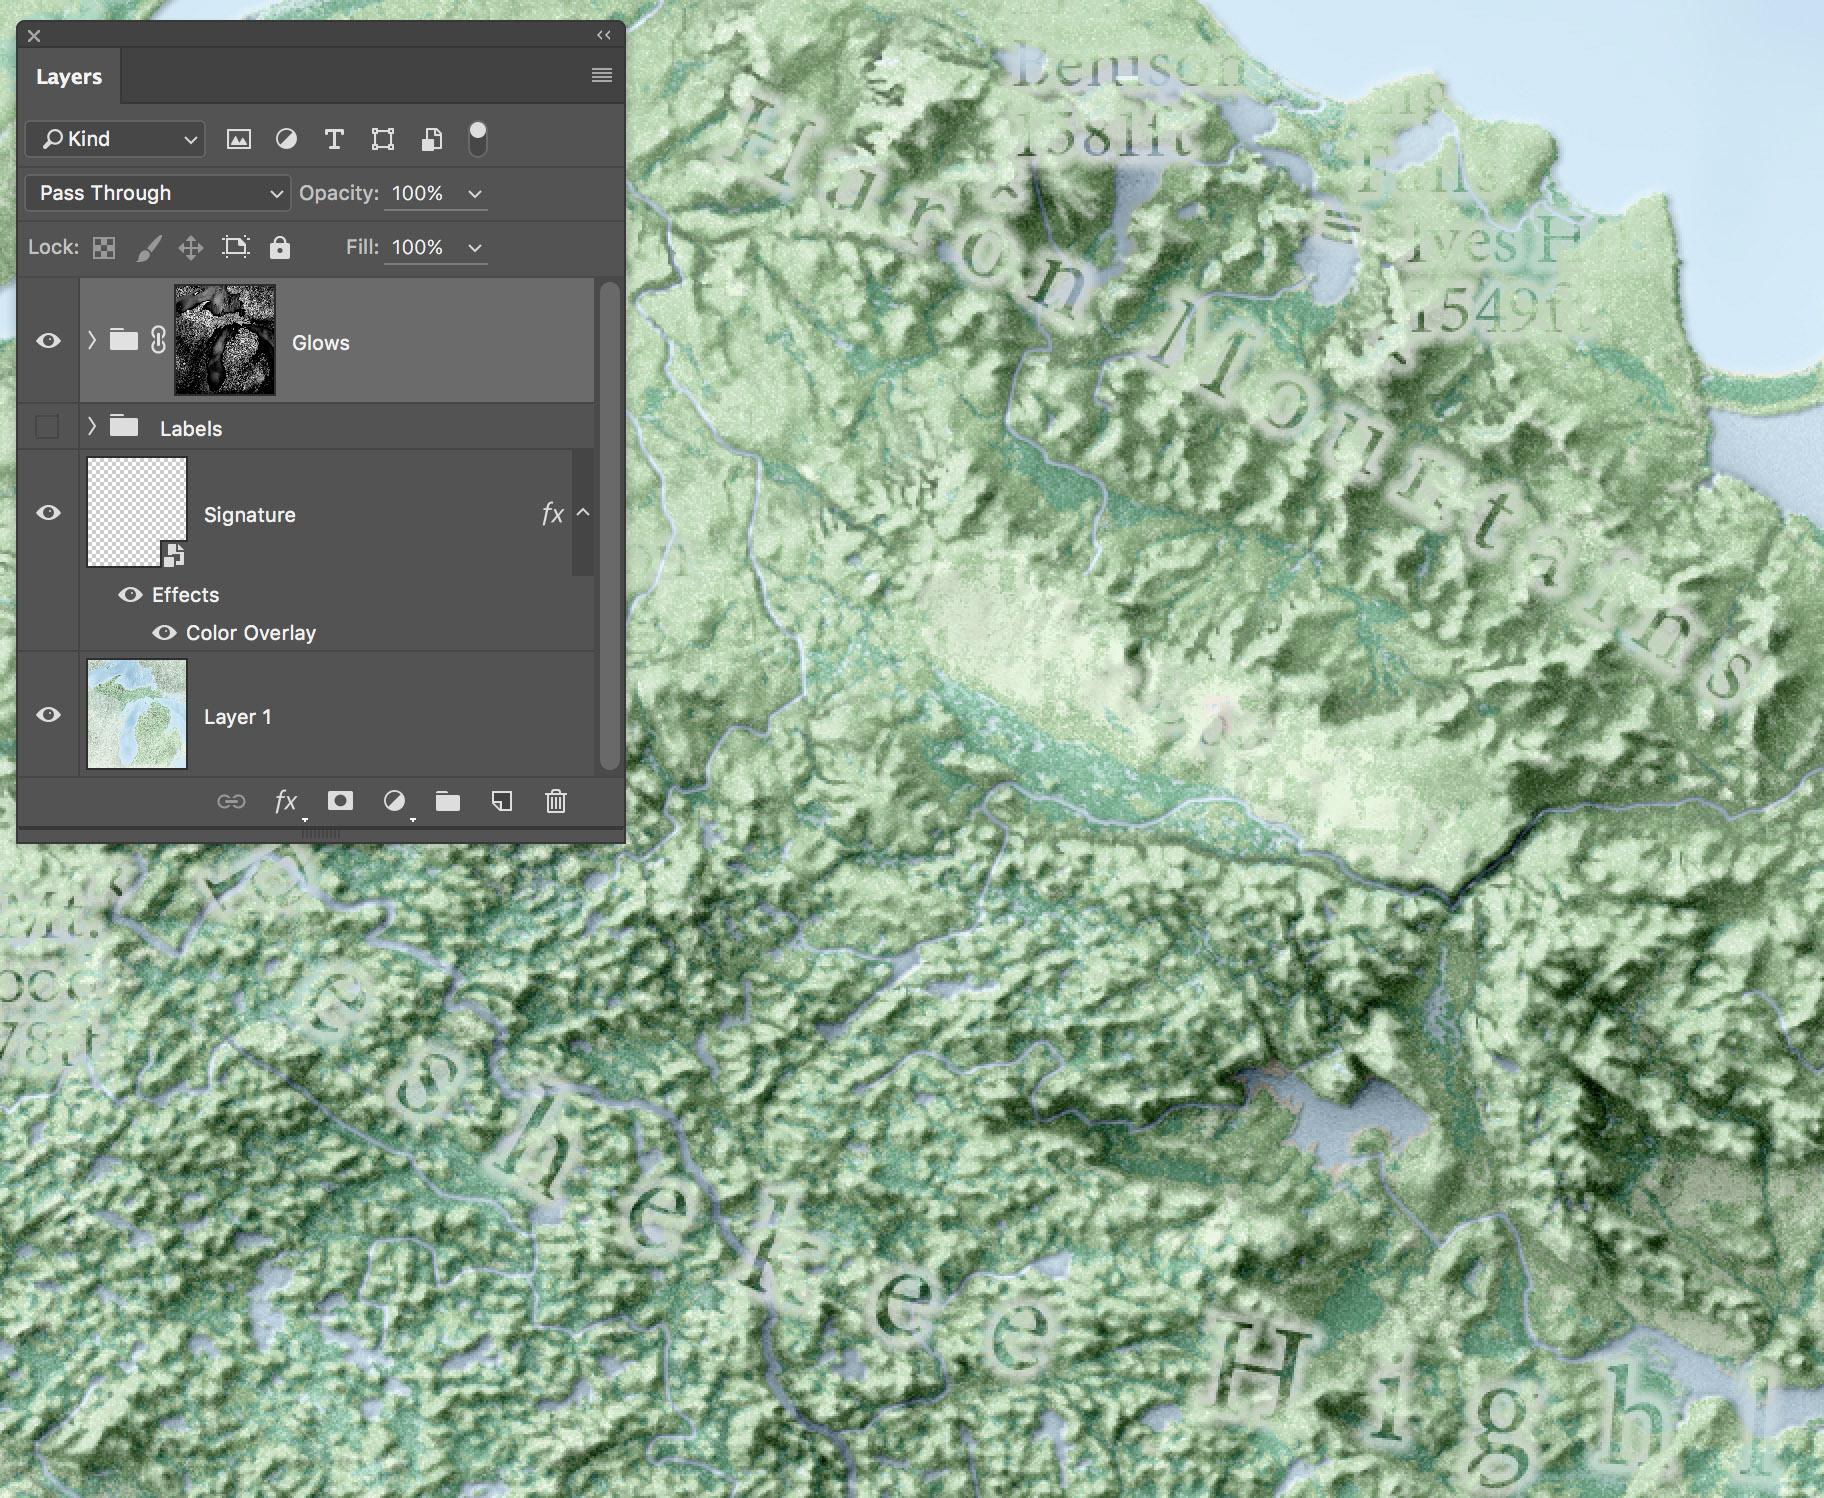 Terrain in Photoshop: Layer by Layer   somethingaboutmaps